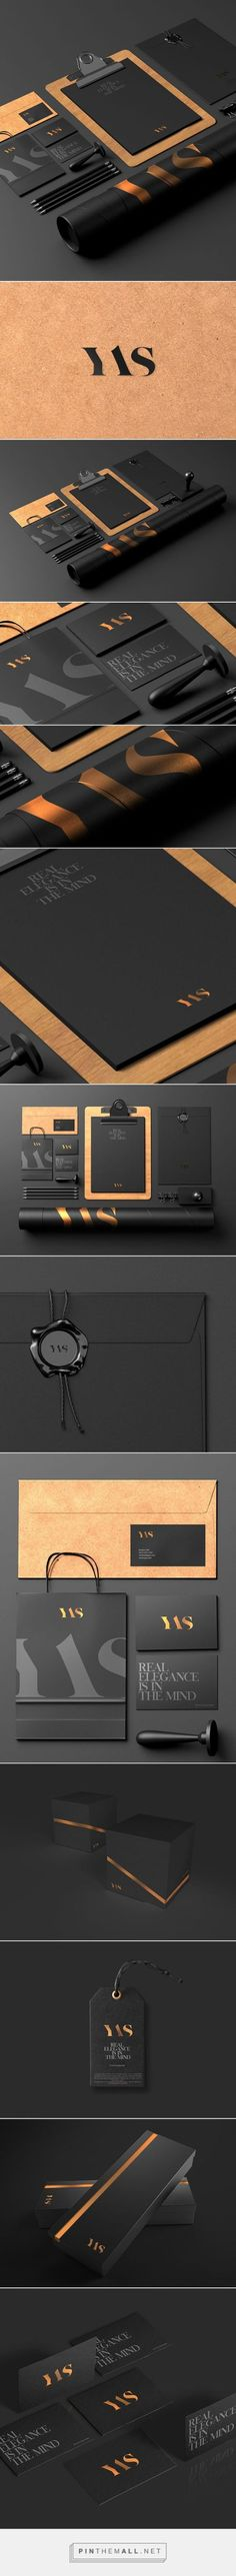 YAS - accessories for men on Behance by Sebastian Bednarek curated by Packaging Diva PD. This is gorgeous identity packaging branding. Design Corporativo, Logo Design, Brand Identity Design, Graphic Design Branding, Creative Design, Brand Design, Corporate Design, Corporate Identity, Visual Identity